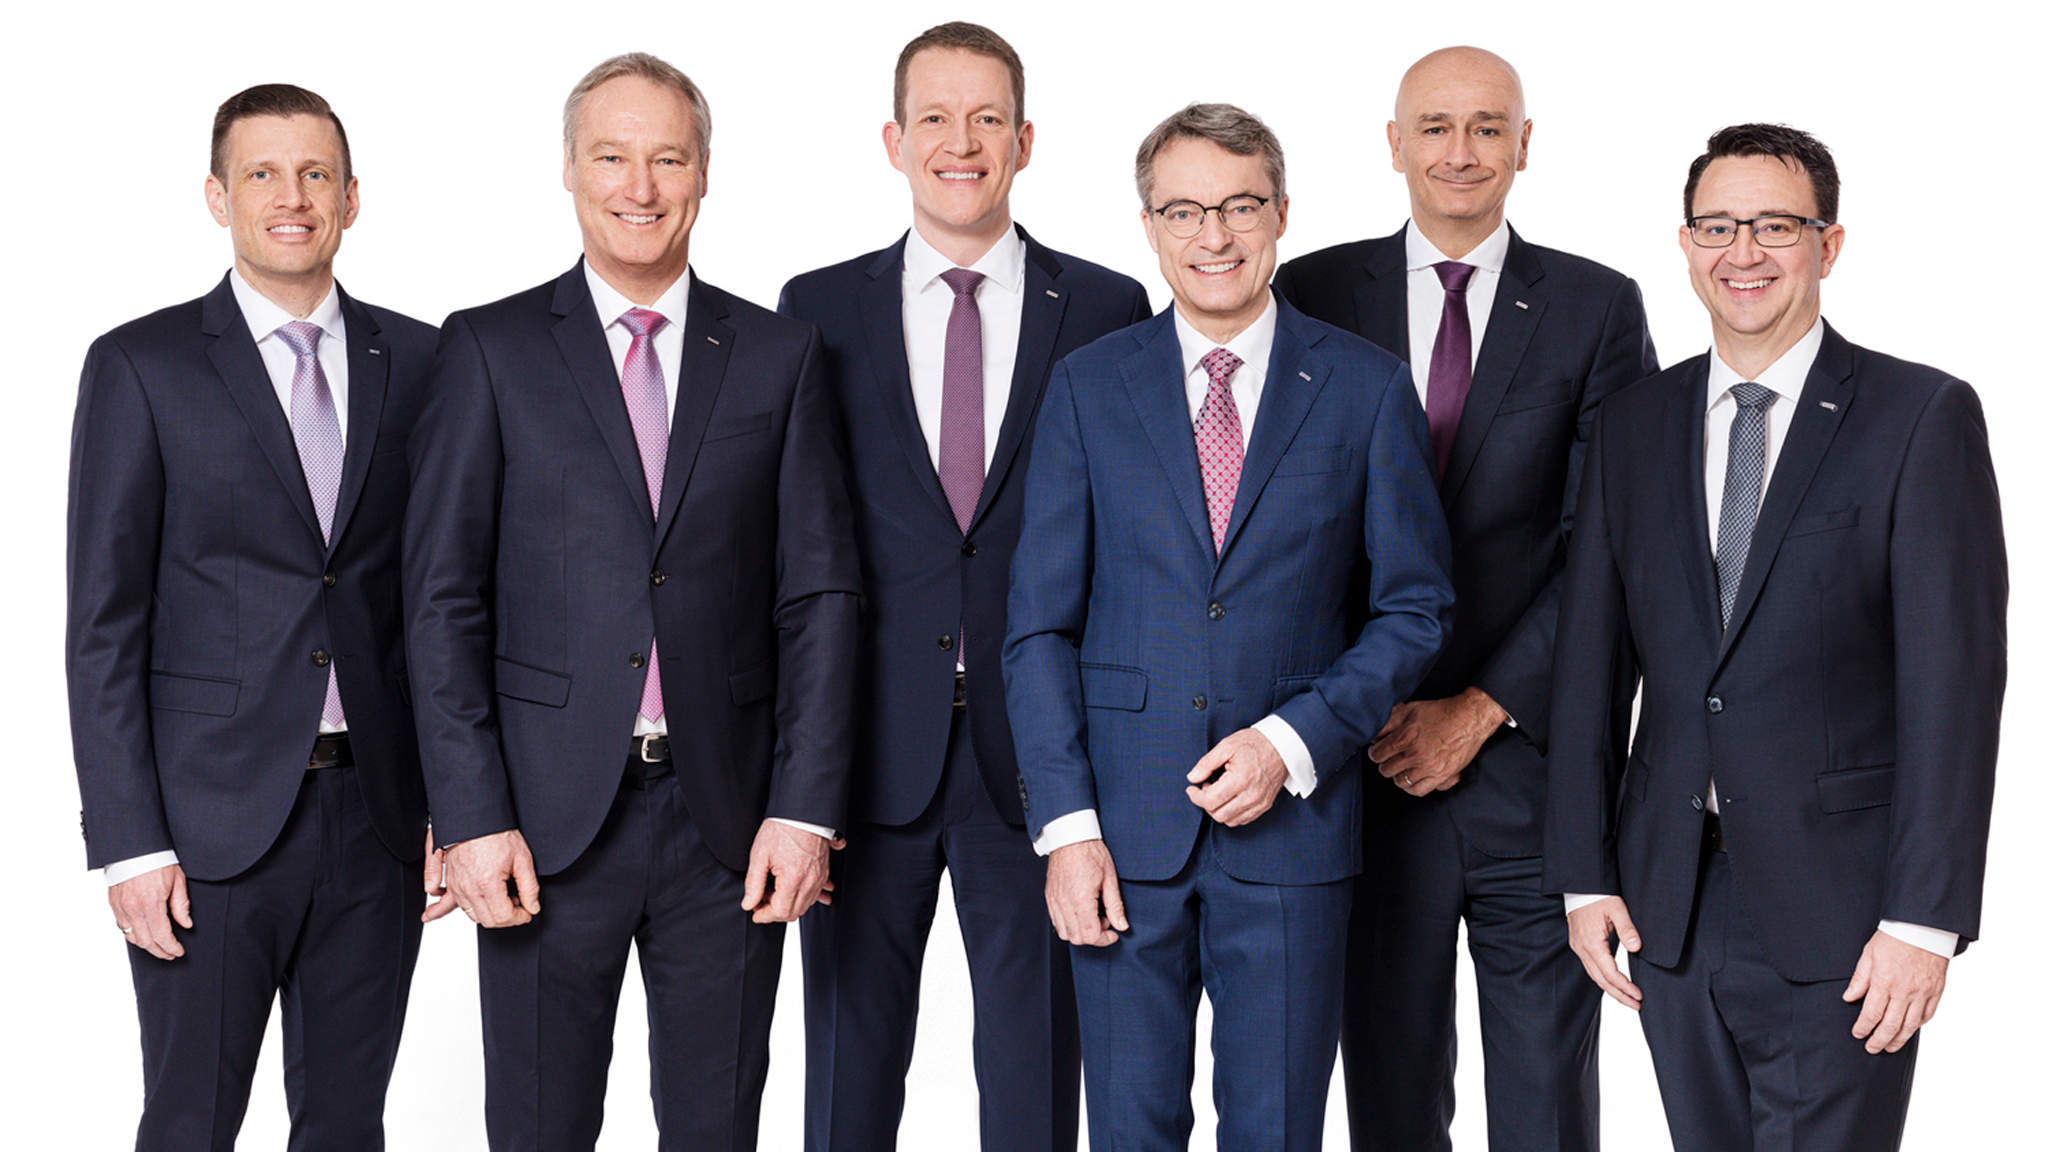 v.l.n.r: Alexander Tonn, Managing Director European Logistics Germany (ab 1.1.2021 COO Road Logistics), Michael Schilling, COO Road Logistics; Burkhard Eling, CFO (ab 1.1.2021 CEO); Bernhard Simon, CEO; Edoardo Podestà, COO Air & Sea Logistics; Stefan Hohm, Corporate Director Corporate Solutions, Research & Development (ab 1.1.2021 CDO)